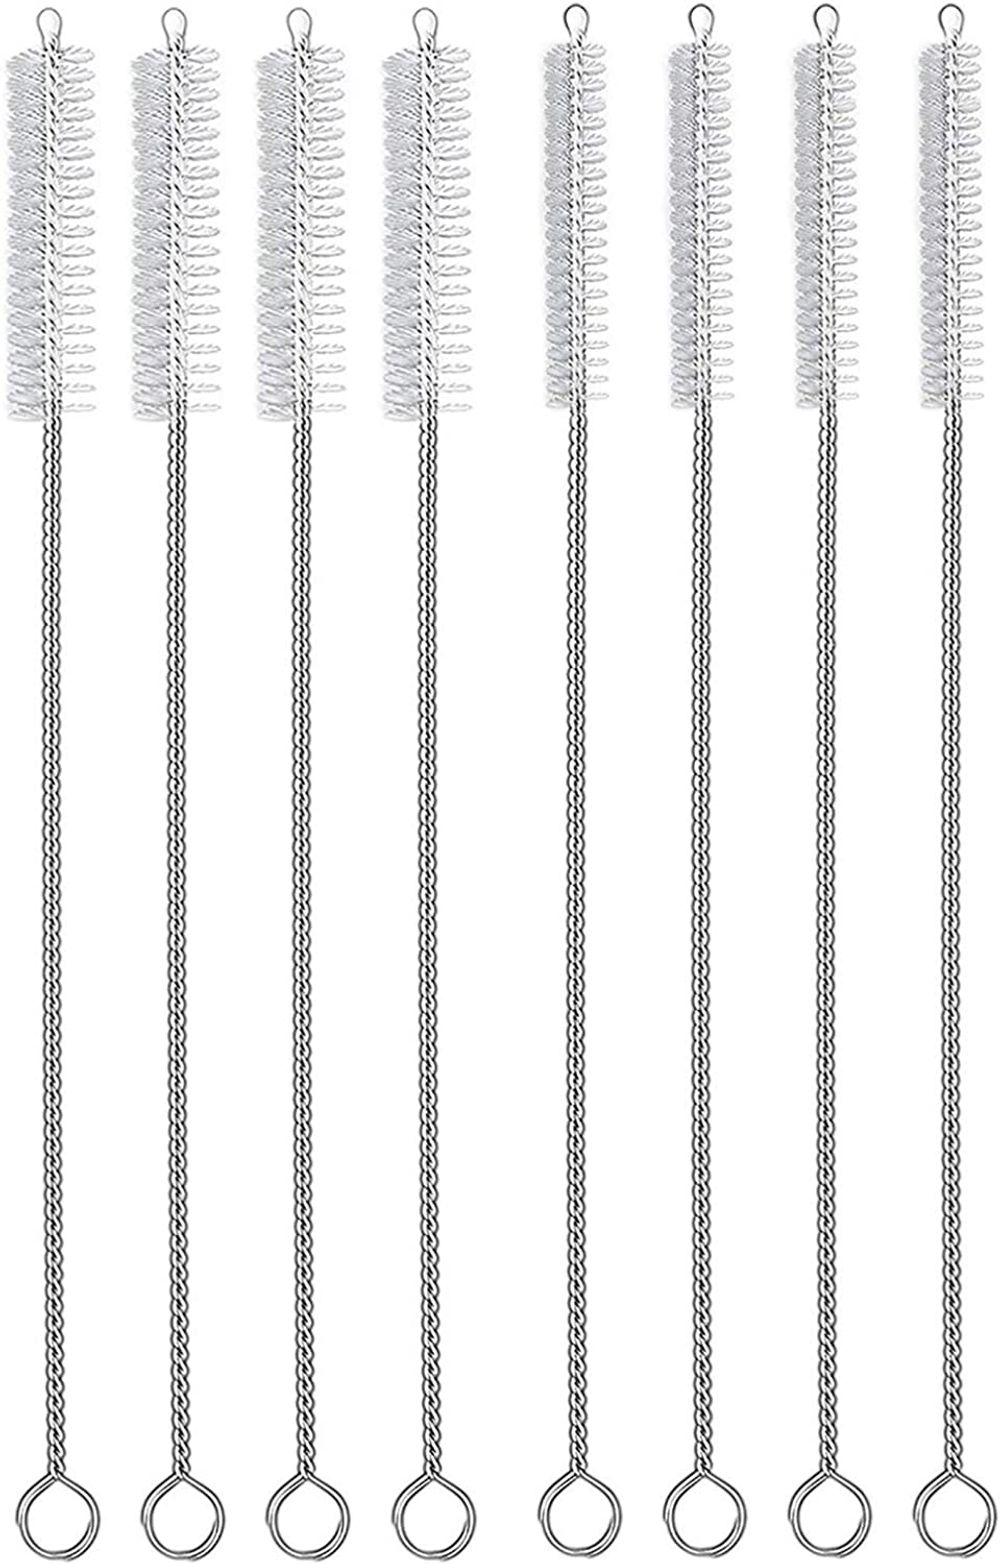 HIWARE Straw Cleaner Brush Set, 8-Piece Long Cleaning Brush for Straws on Tumbler, Water Bottle, Sippy Cup, and Pipes, Tubes or HummingbirdFeeders